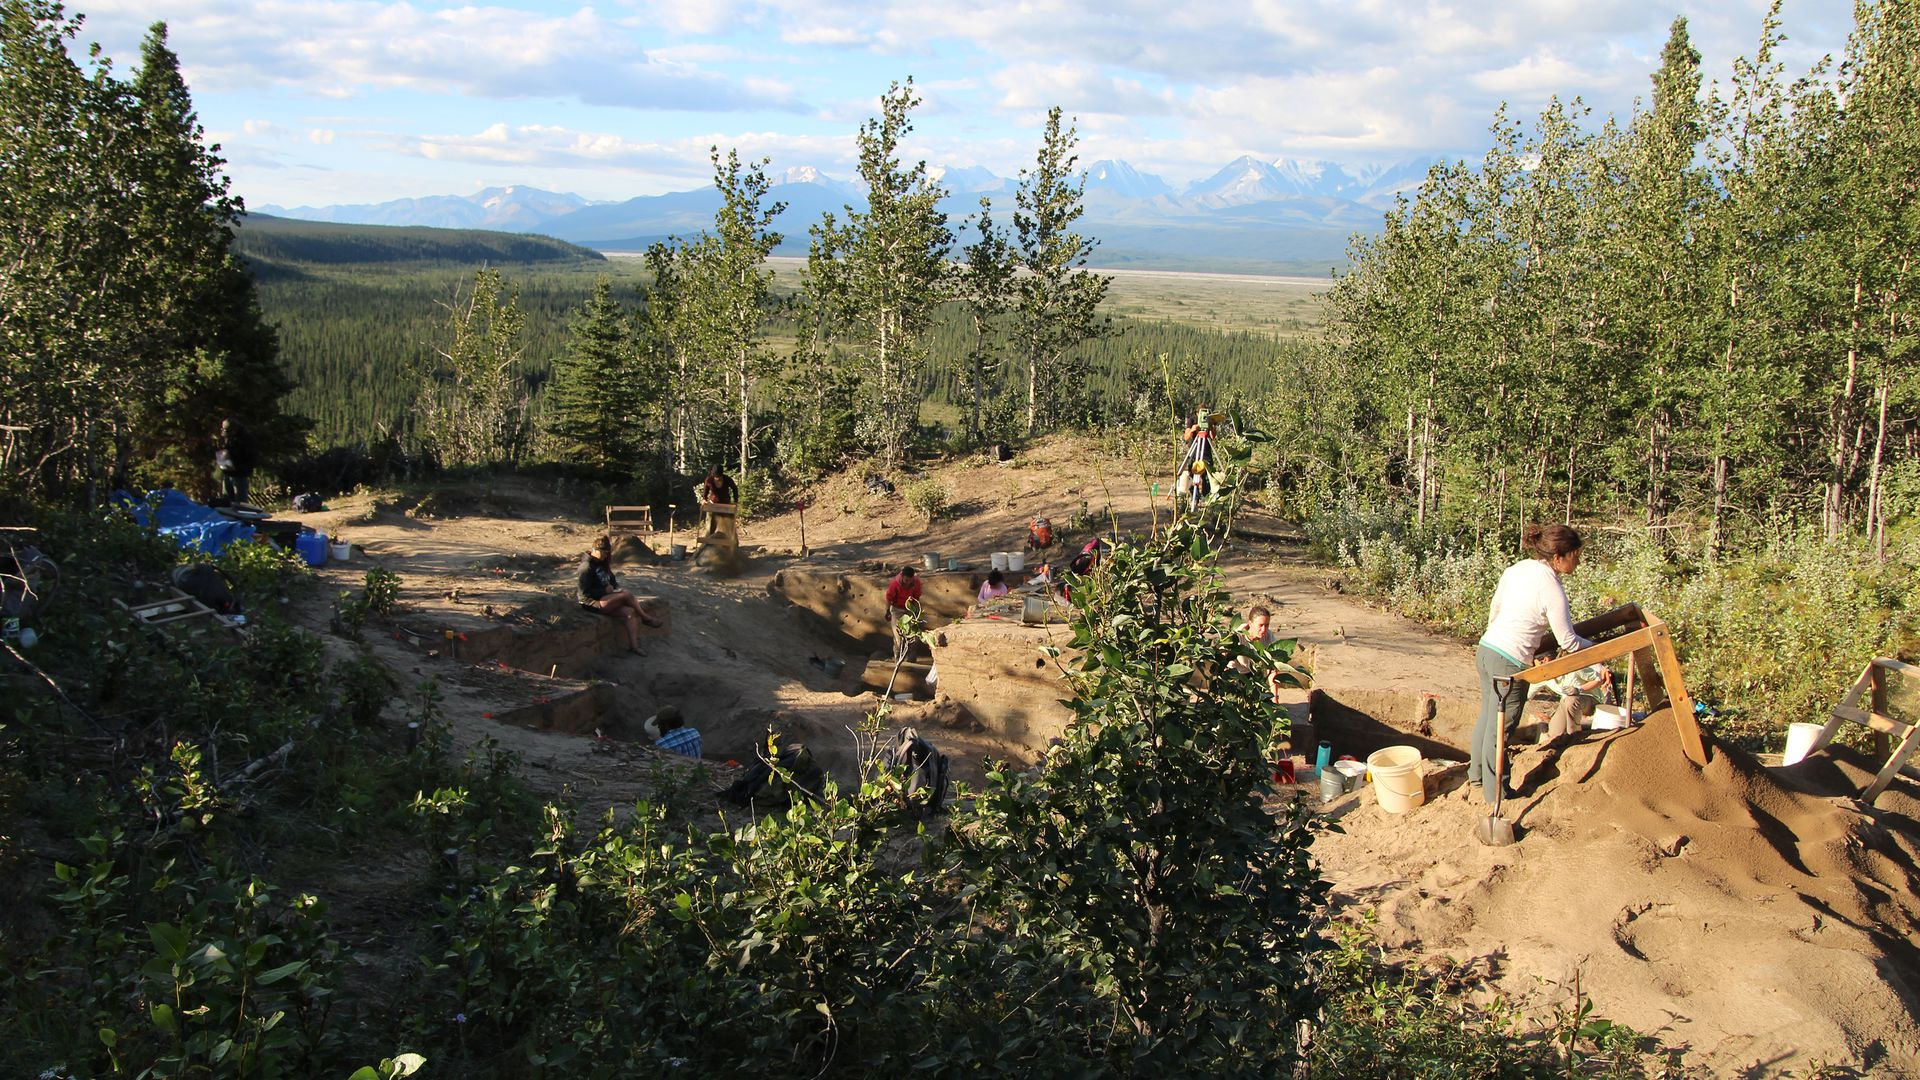 Early excavation site in Beringia with mountains in the background